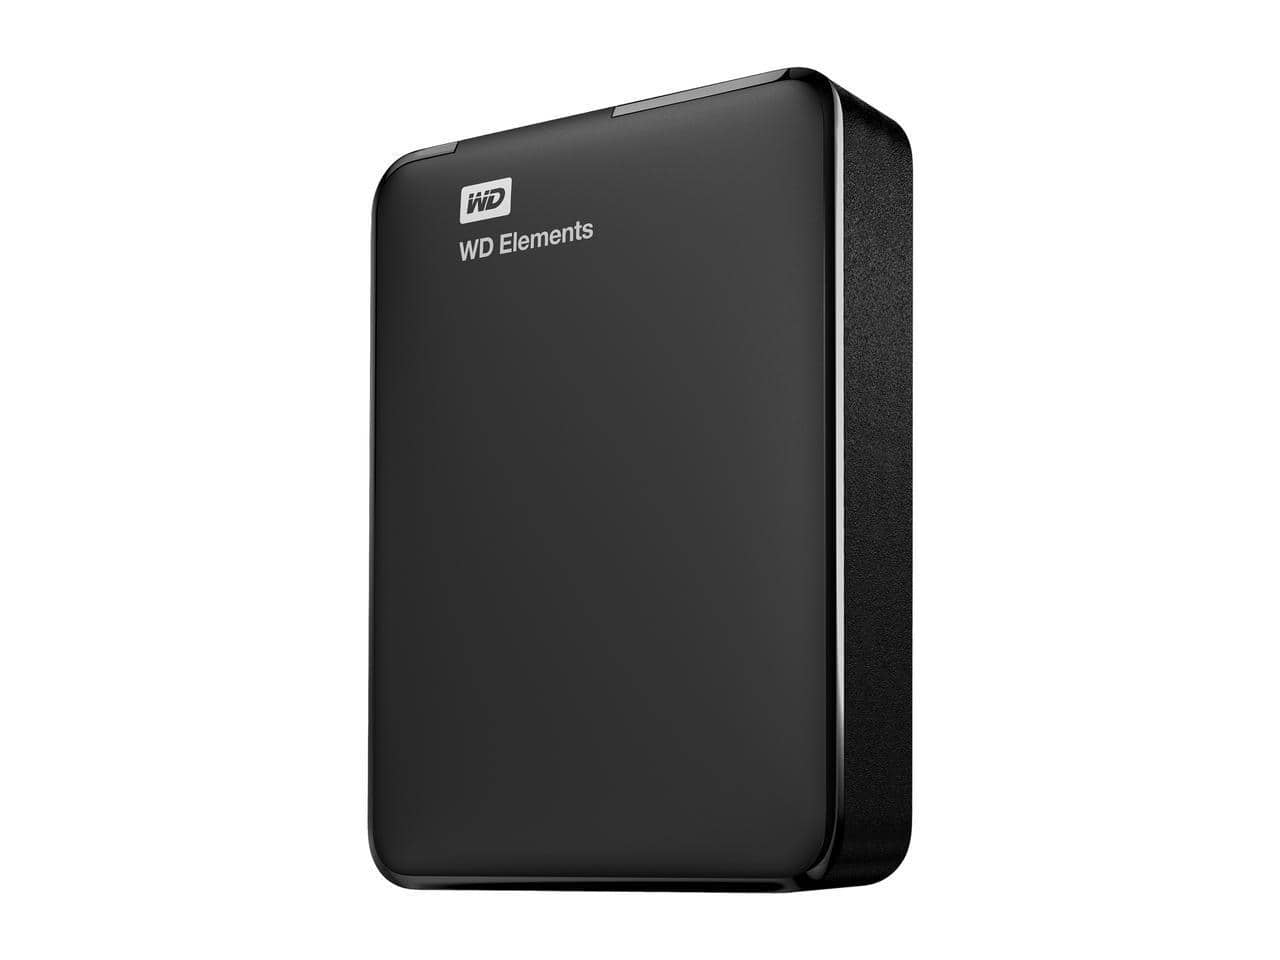 WD Elements 2TB External USB 3.0 Portable Hard Drive - $59.99 via Newegg with  Promo Code EMCPTER49